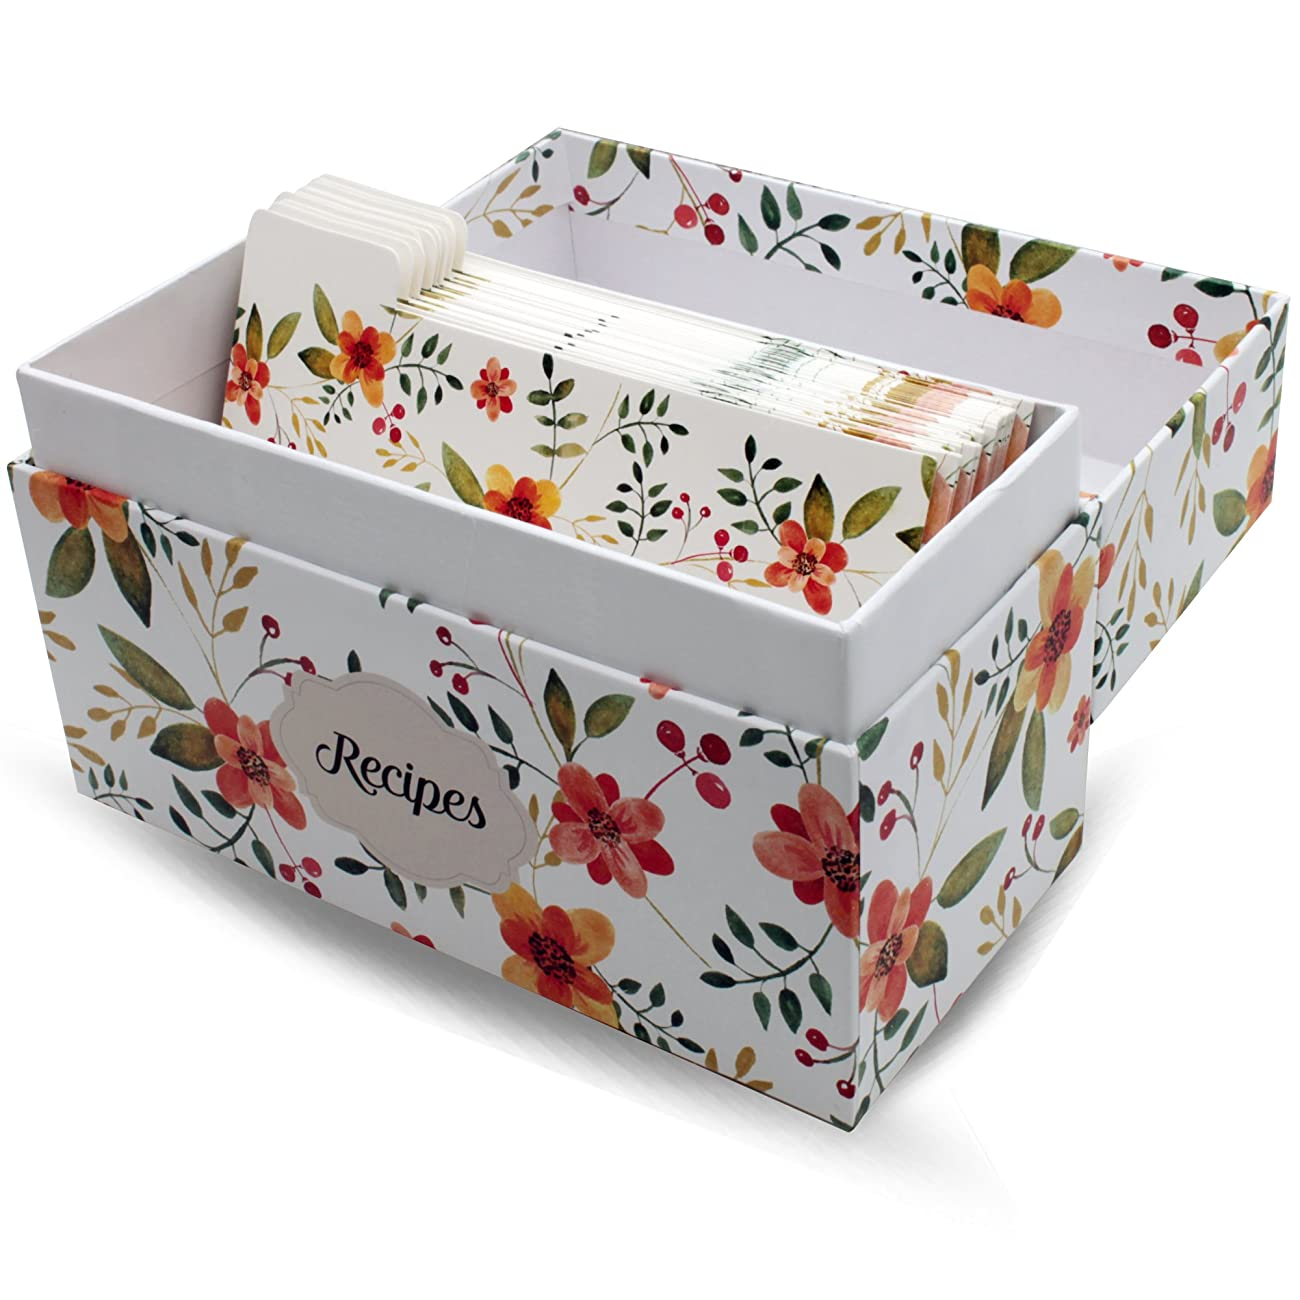 Vintage-Look Recipe Box Set With 50 Recipe Cards & 10 Blank Dividers | Holds Up To 200, 4x6 Cards | From Splendid Chef 4